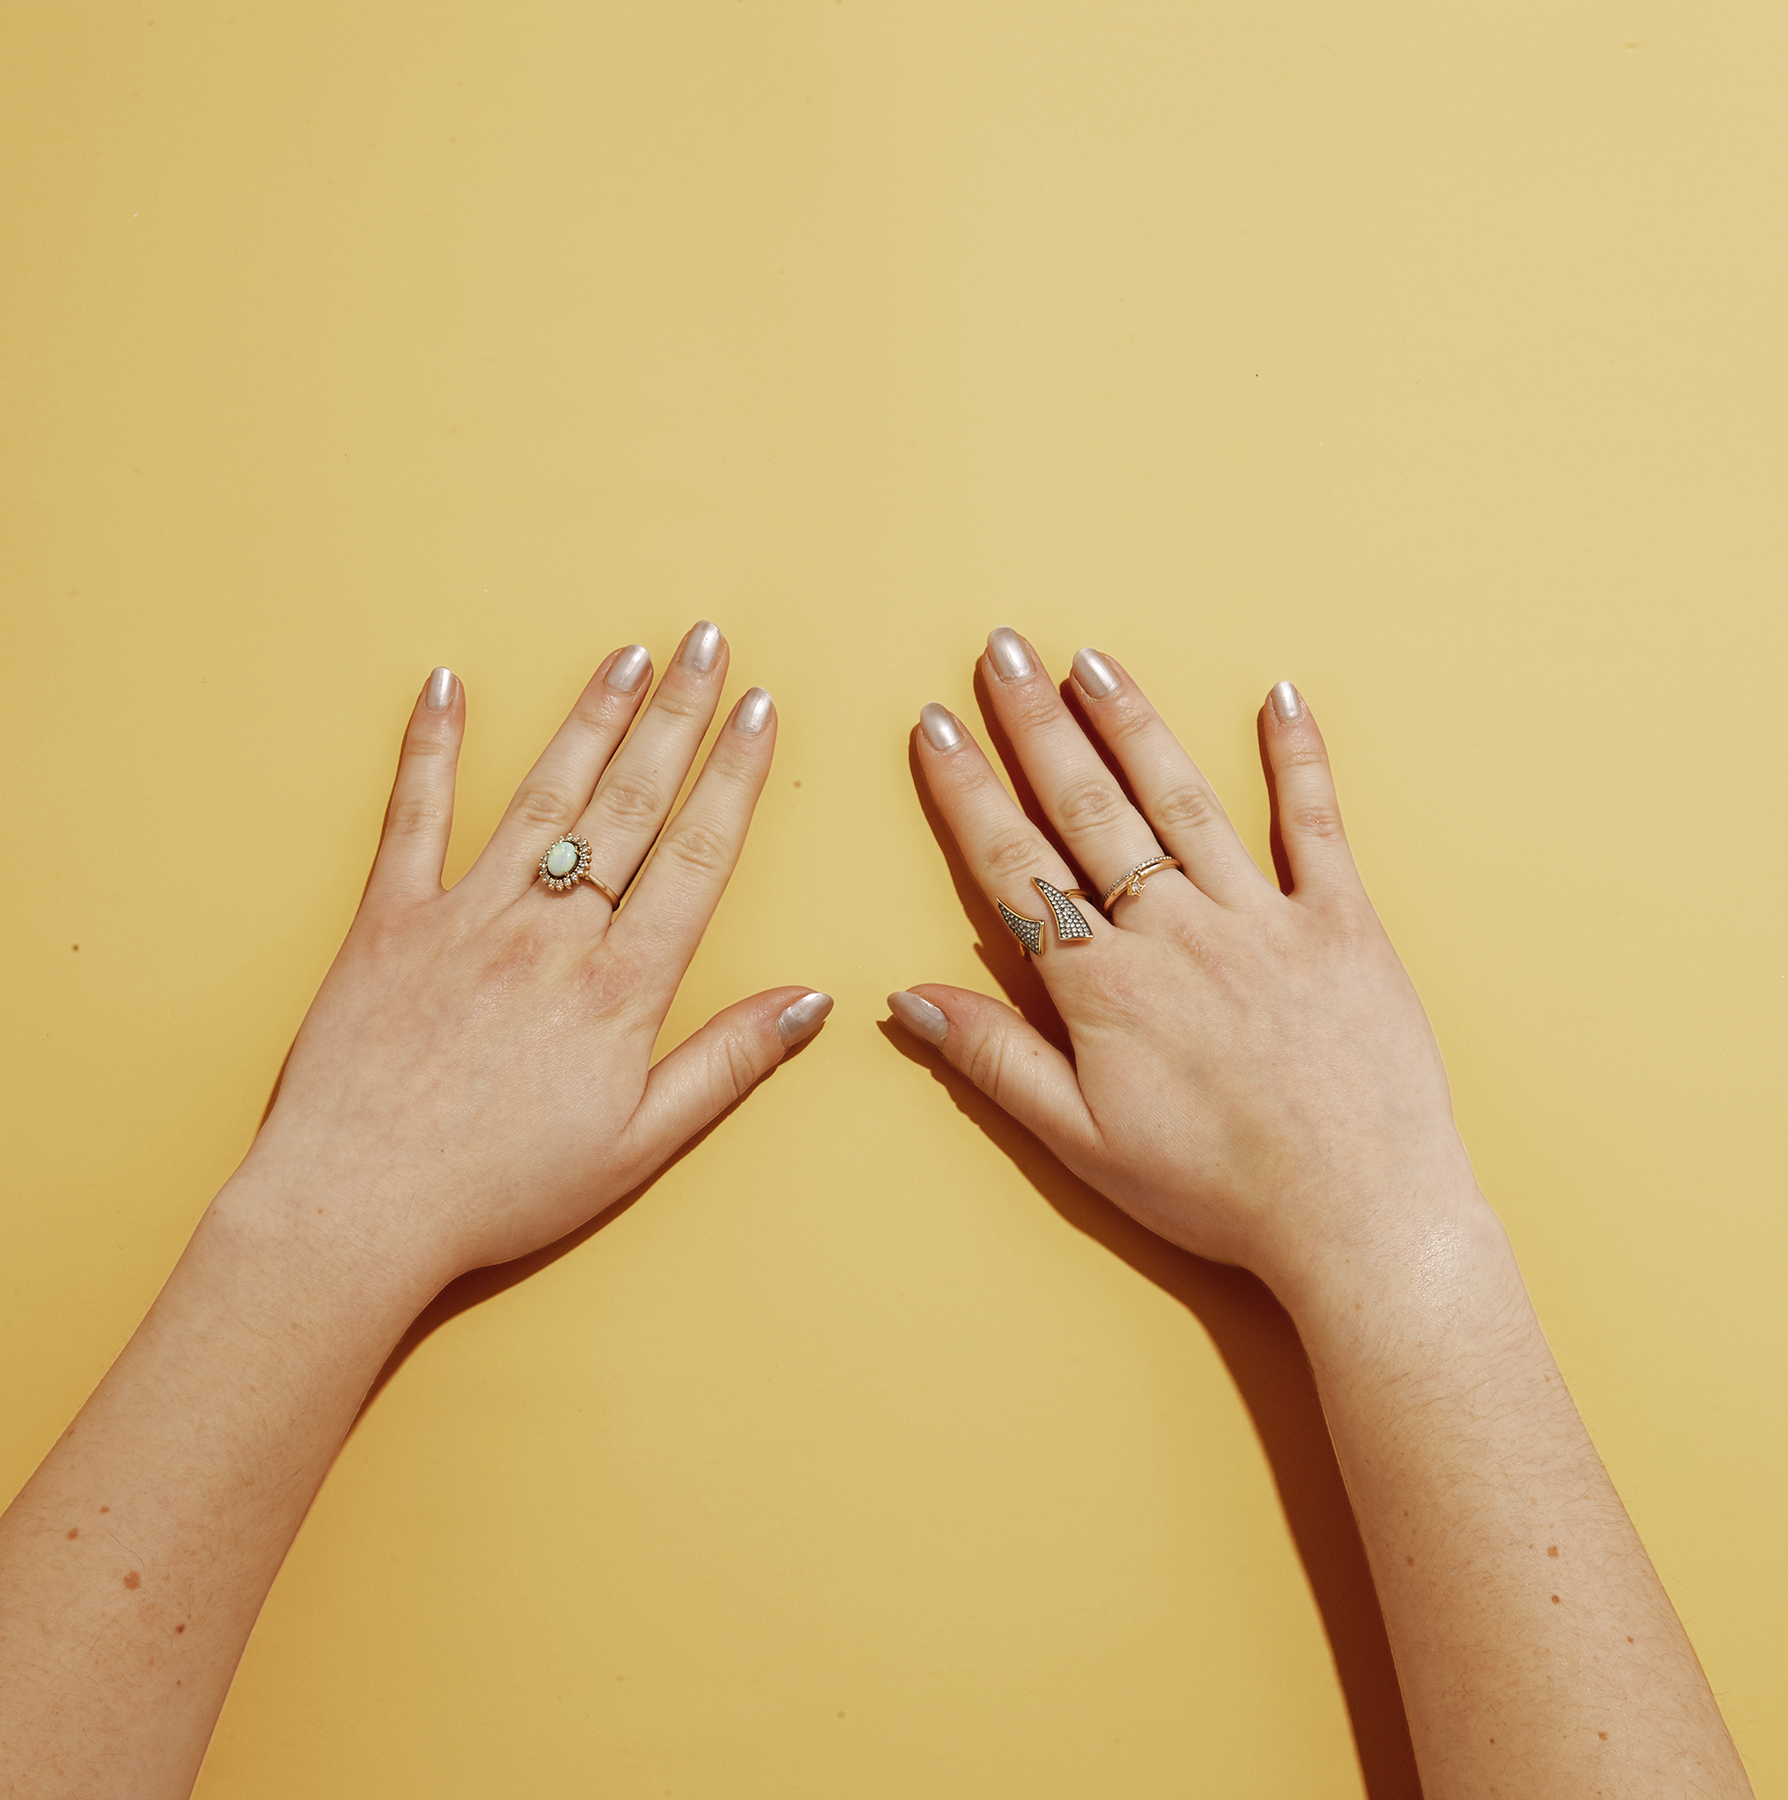 Hands with pearl polish